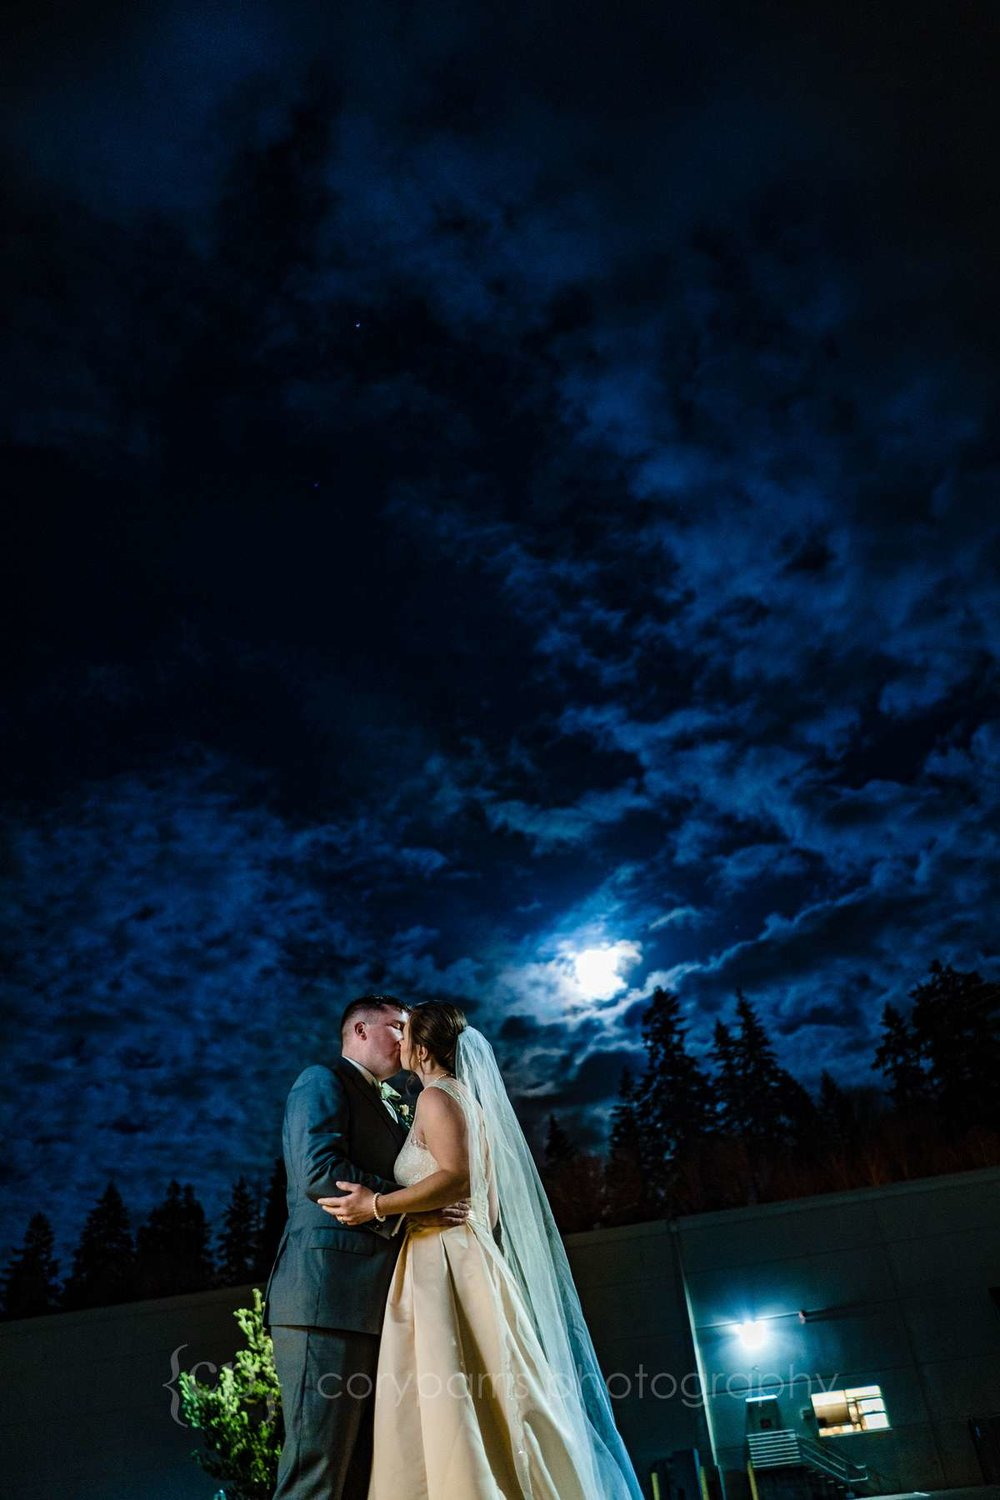 Elizabeth and Don at Brightwater Event Center. Very cool image taken in near complete darkness!